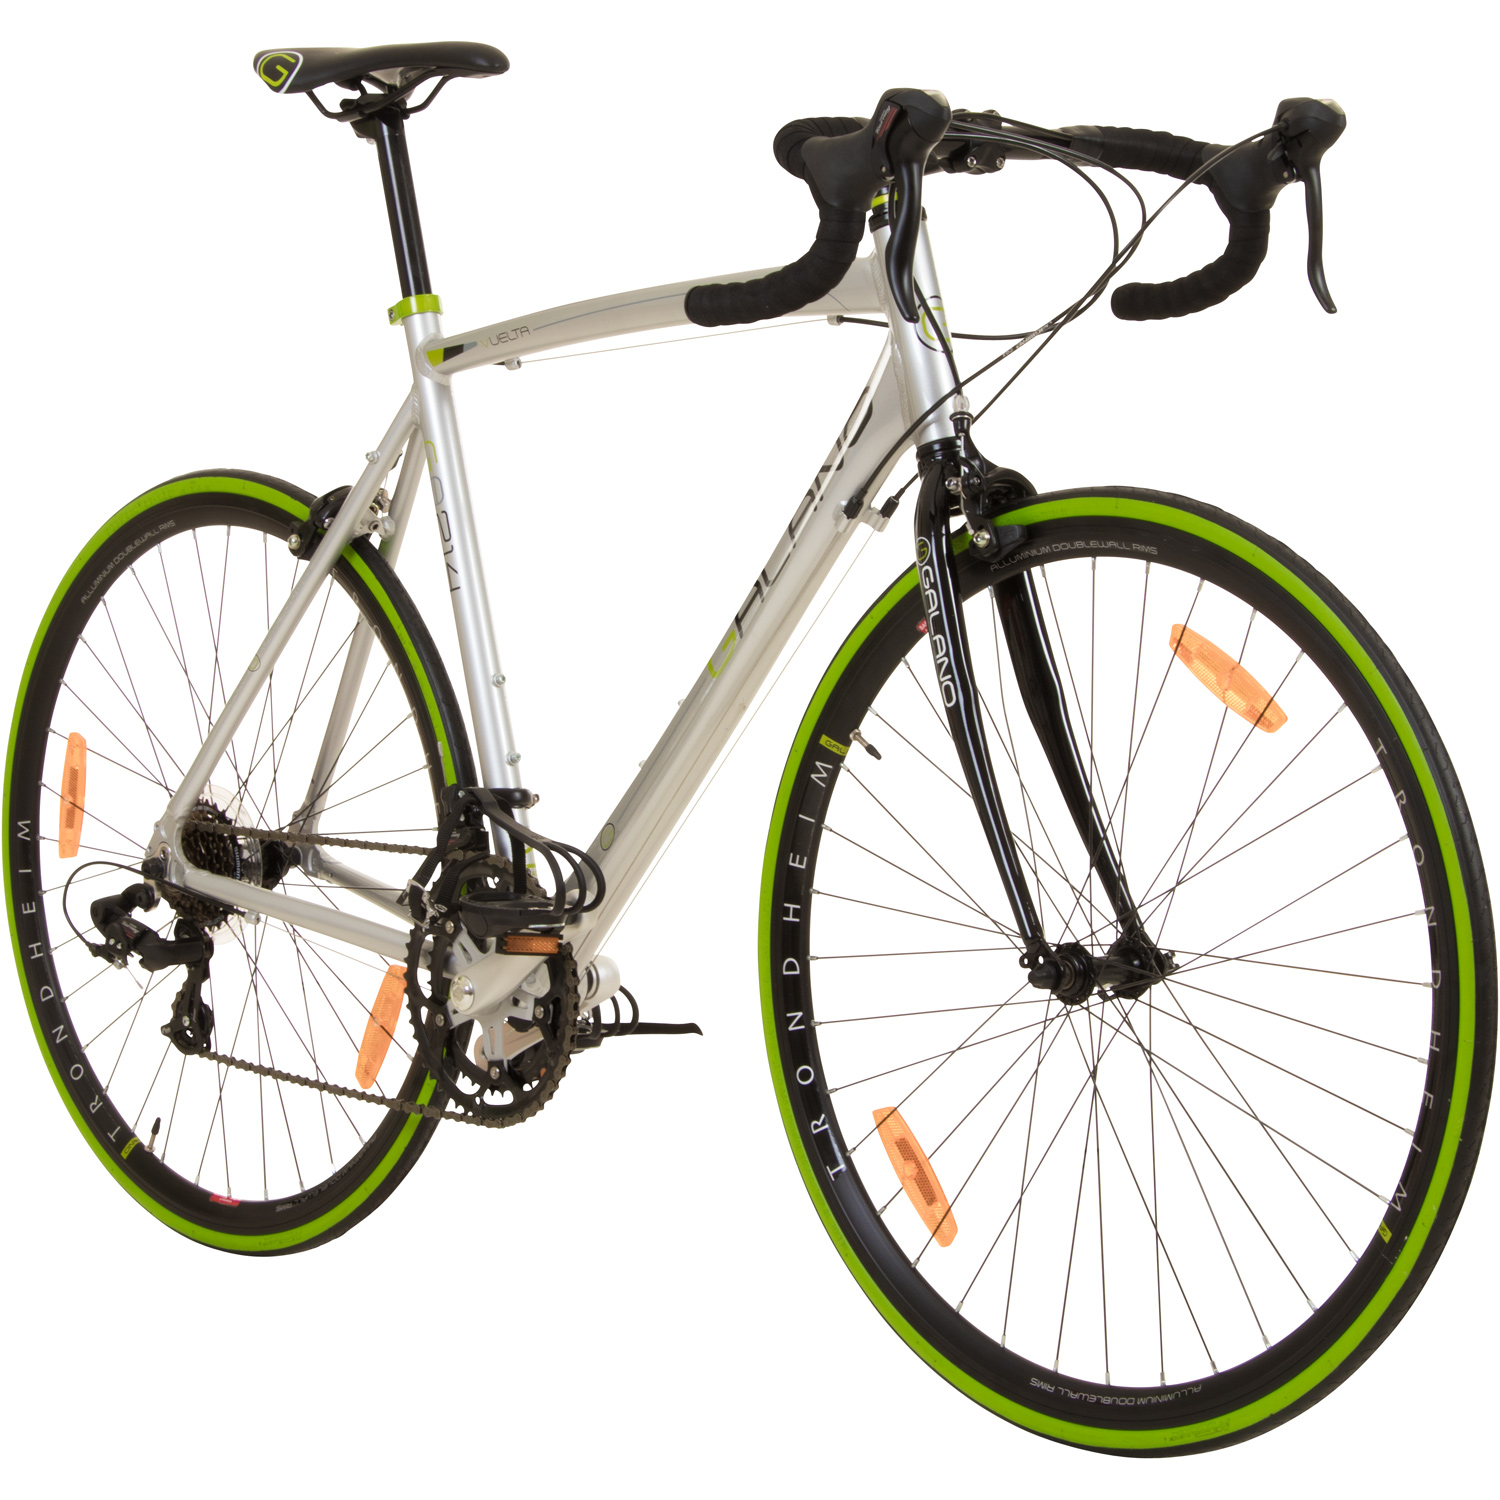 28 Inch Road Race Bike Viking Vuelta Sti Shimano 4 Frame Sizes Bicycle Ceres Webshop